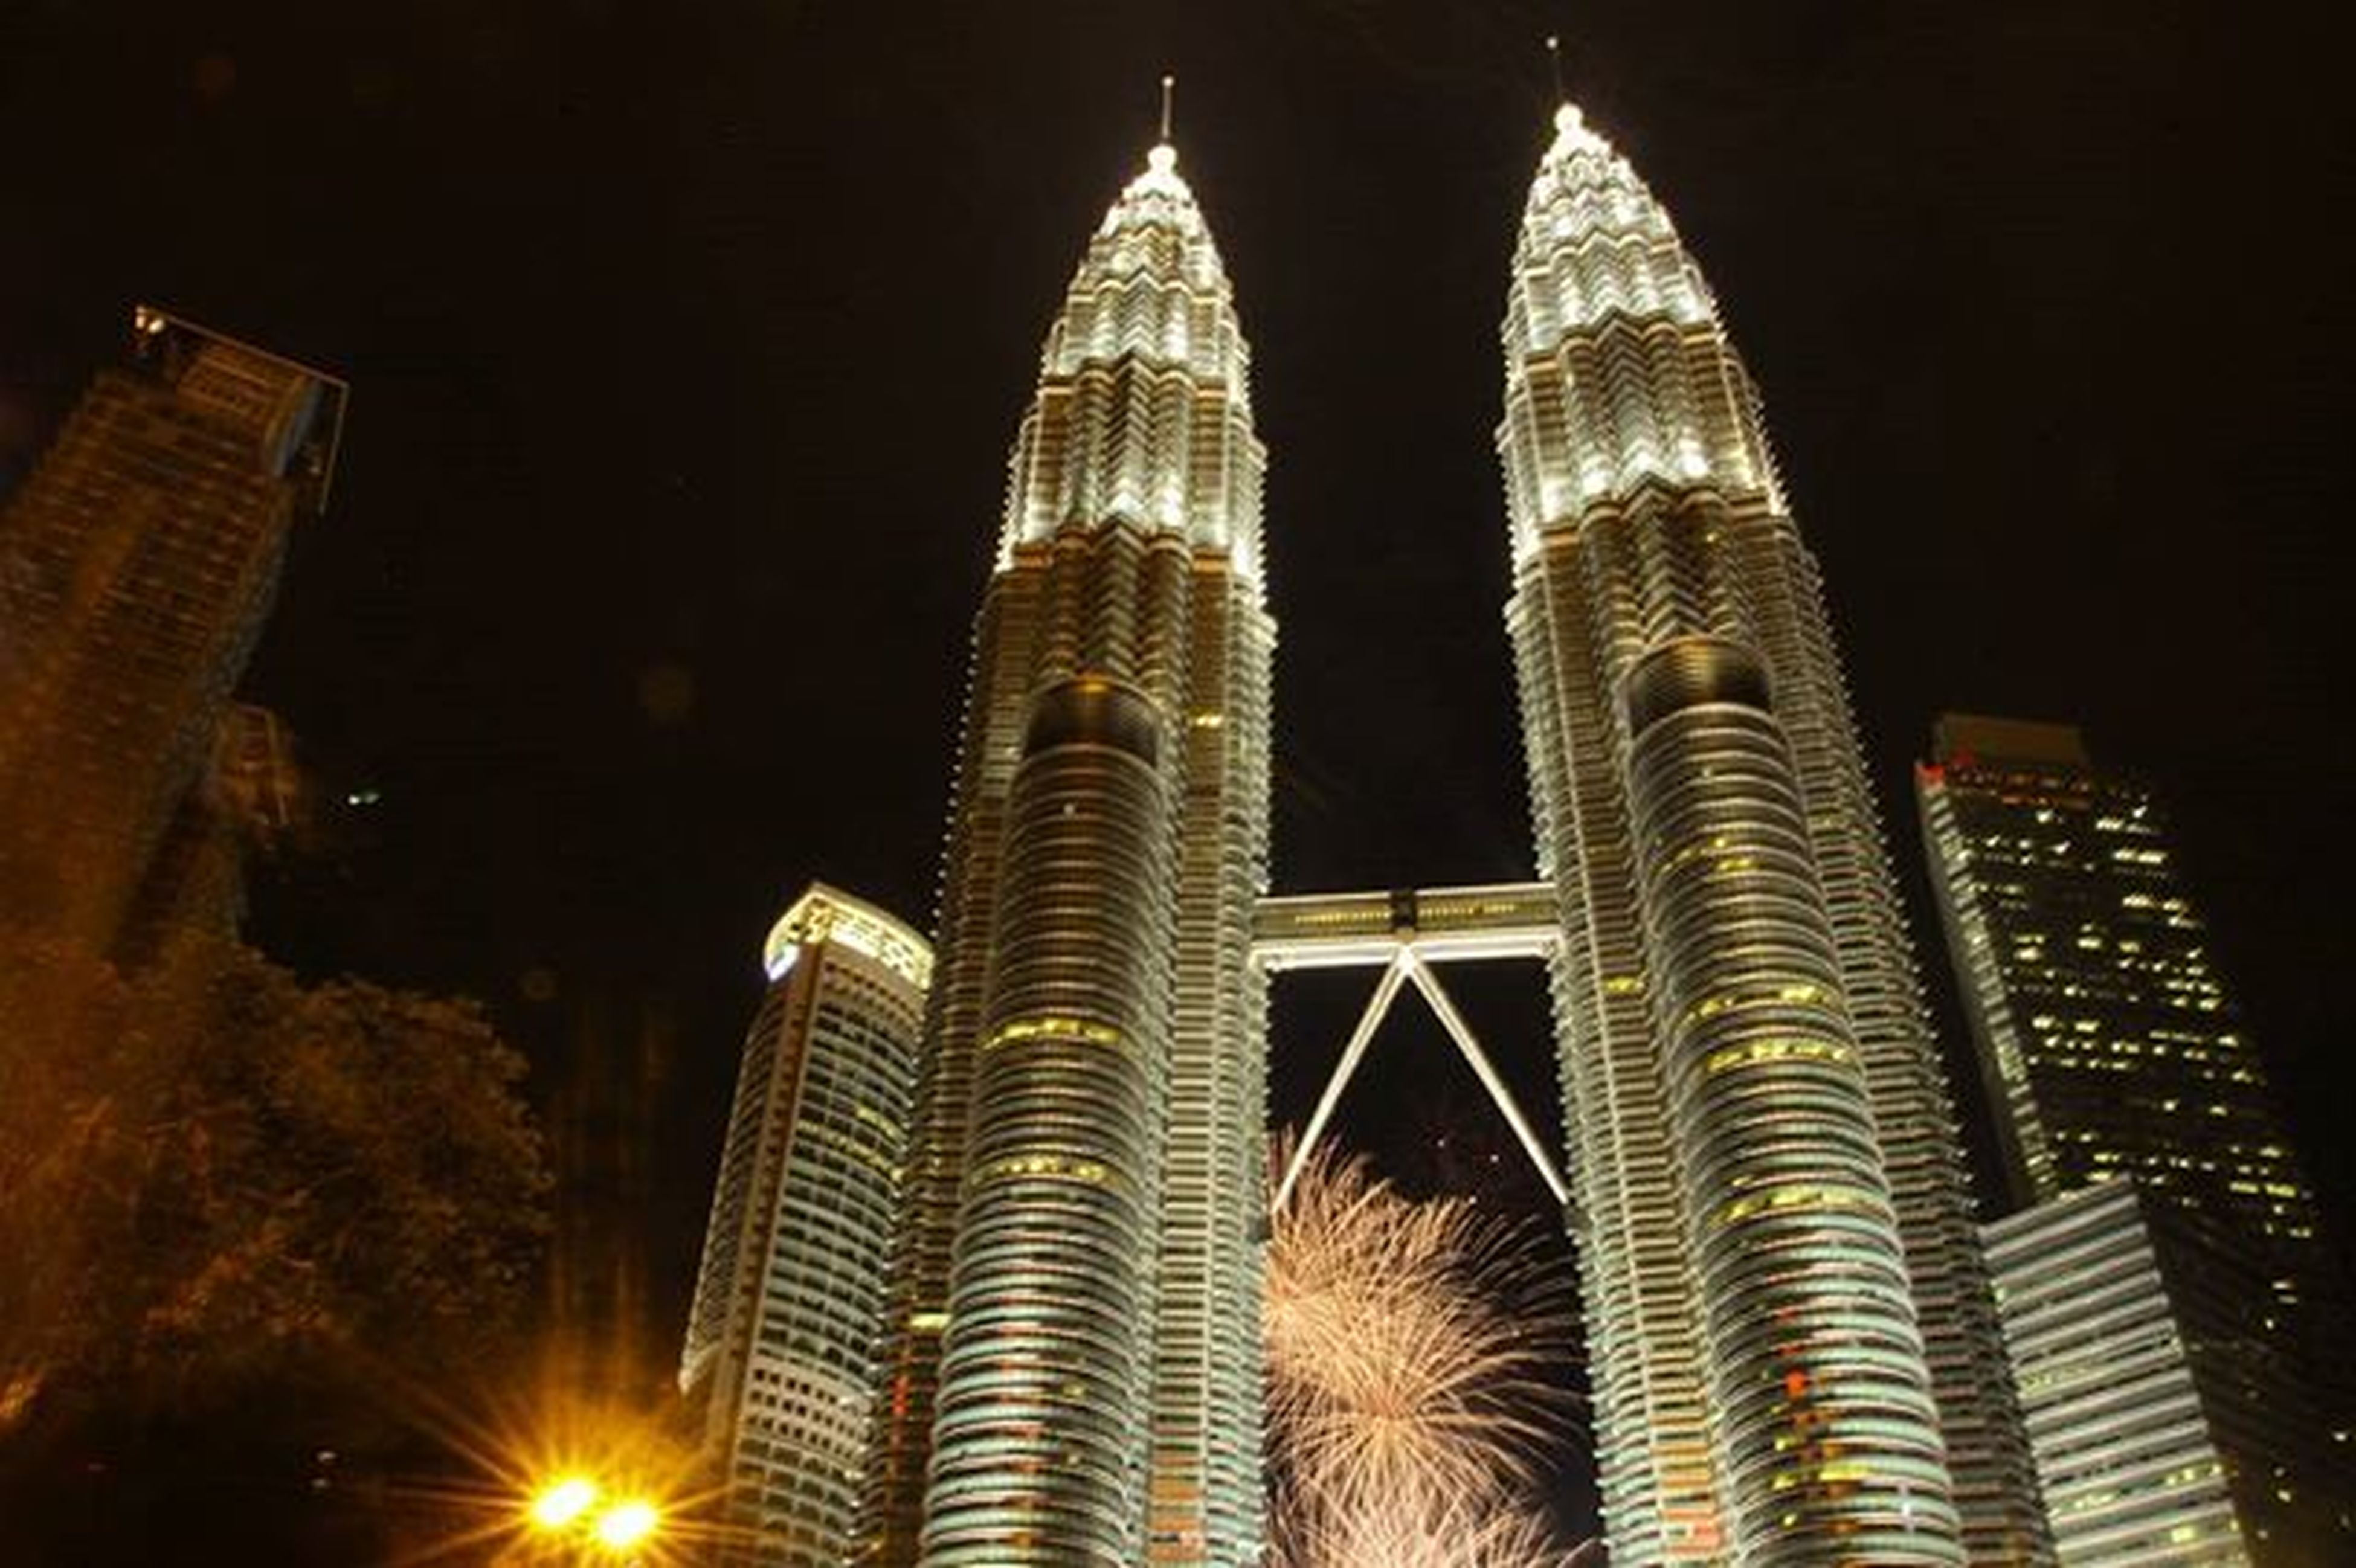 architecture, night, building exterior, built structure, skyscraper, illuminated, tall - high, city, low angle view, tower, modern, office building, travel destinations, famous place, capital cities, international landmark, tourism, sky, outdoors, tall